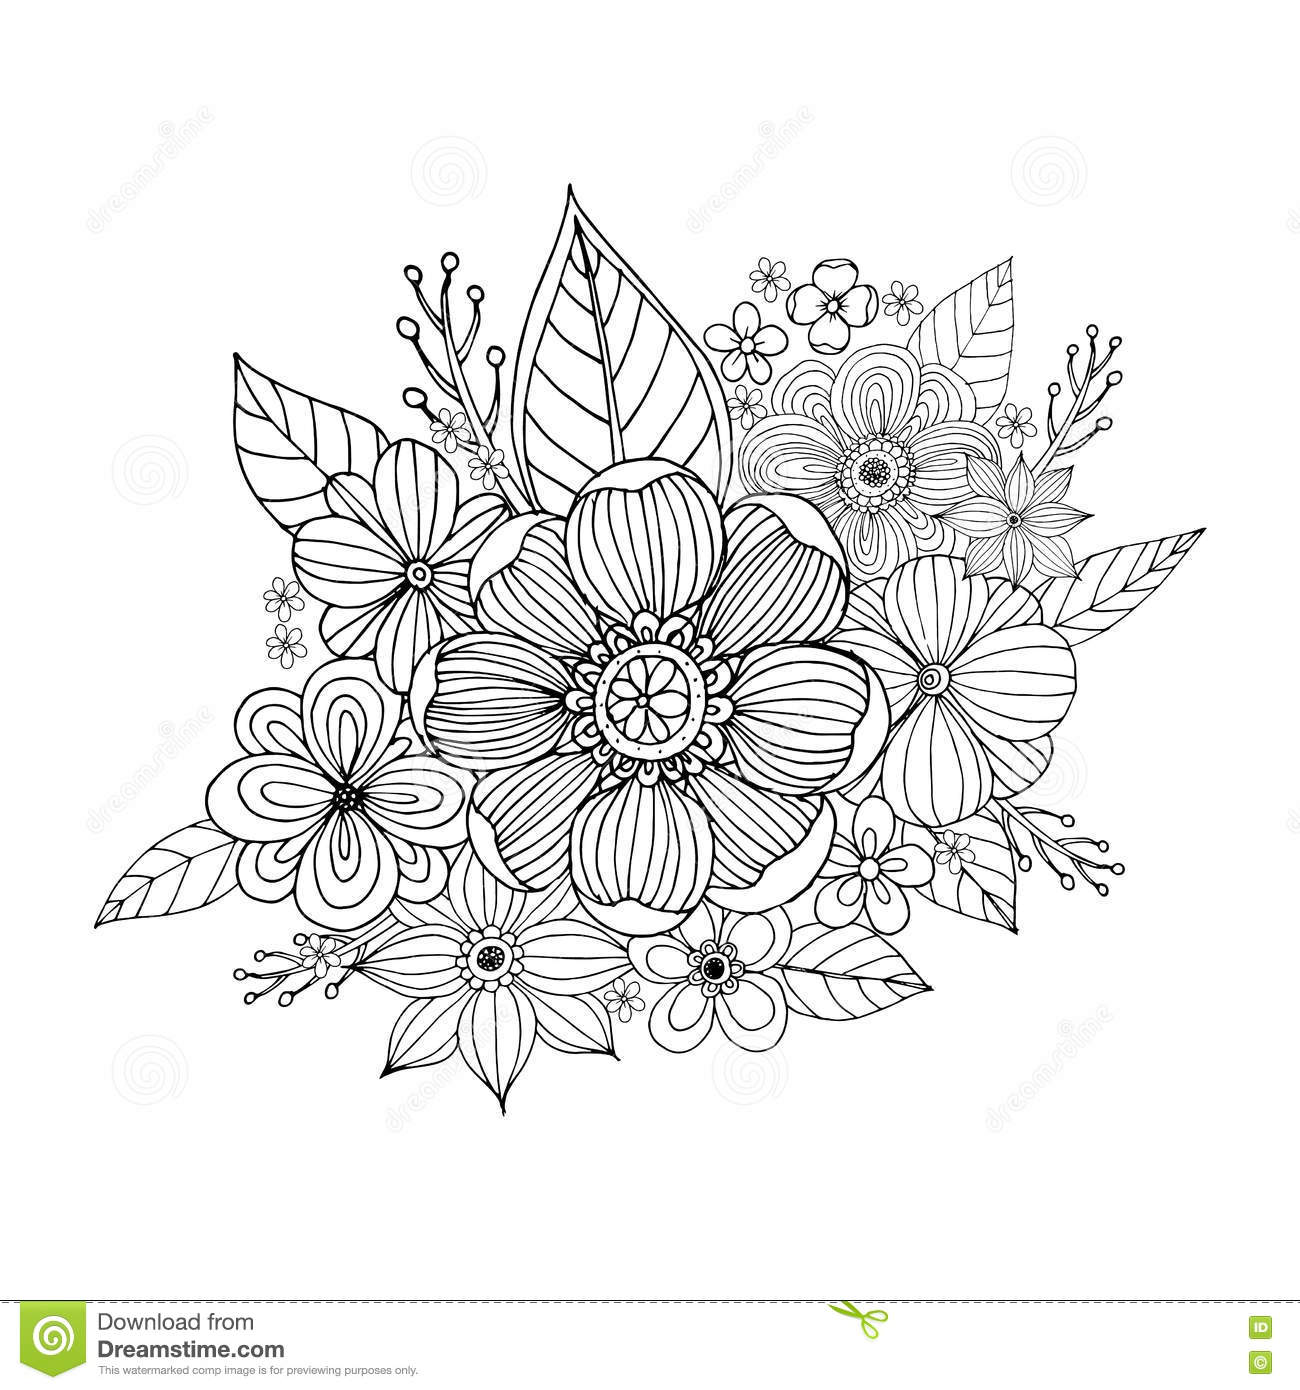 Flower Doodle Drawing Freehand Stock Vector - Illustration of color ...